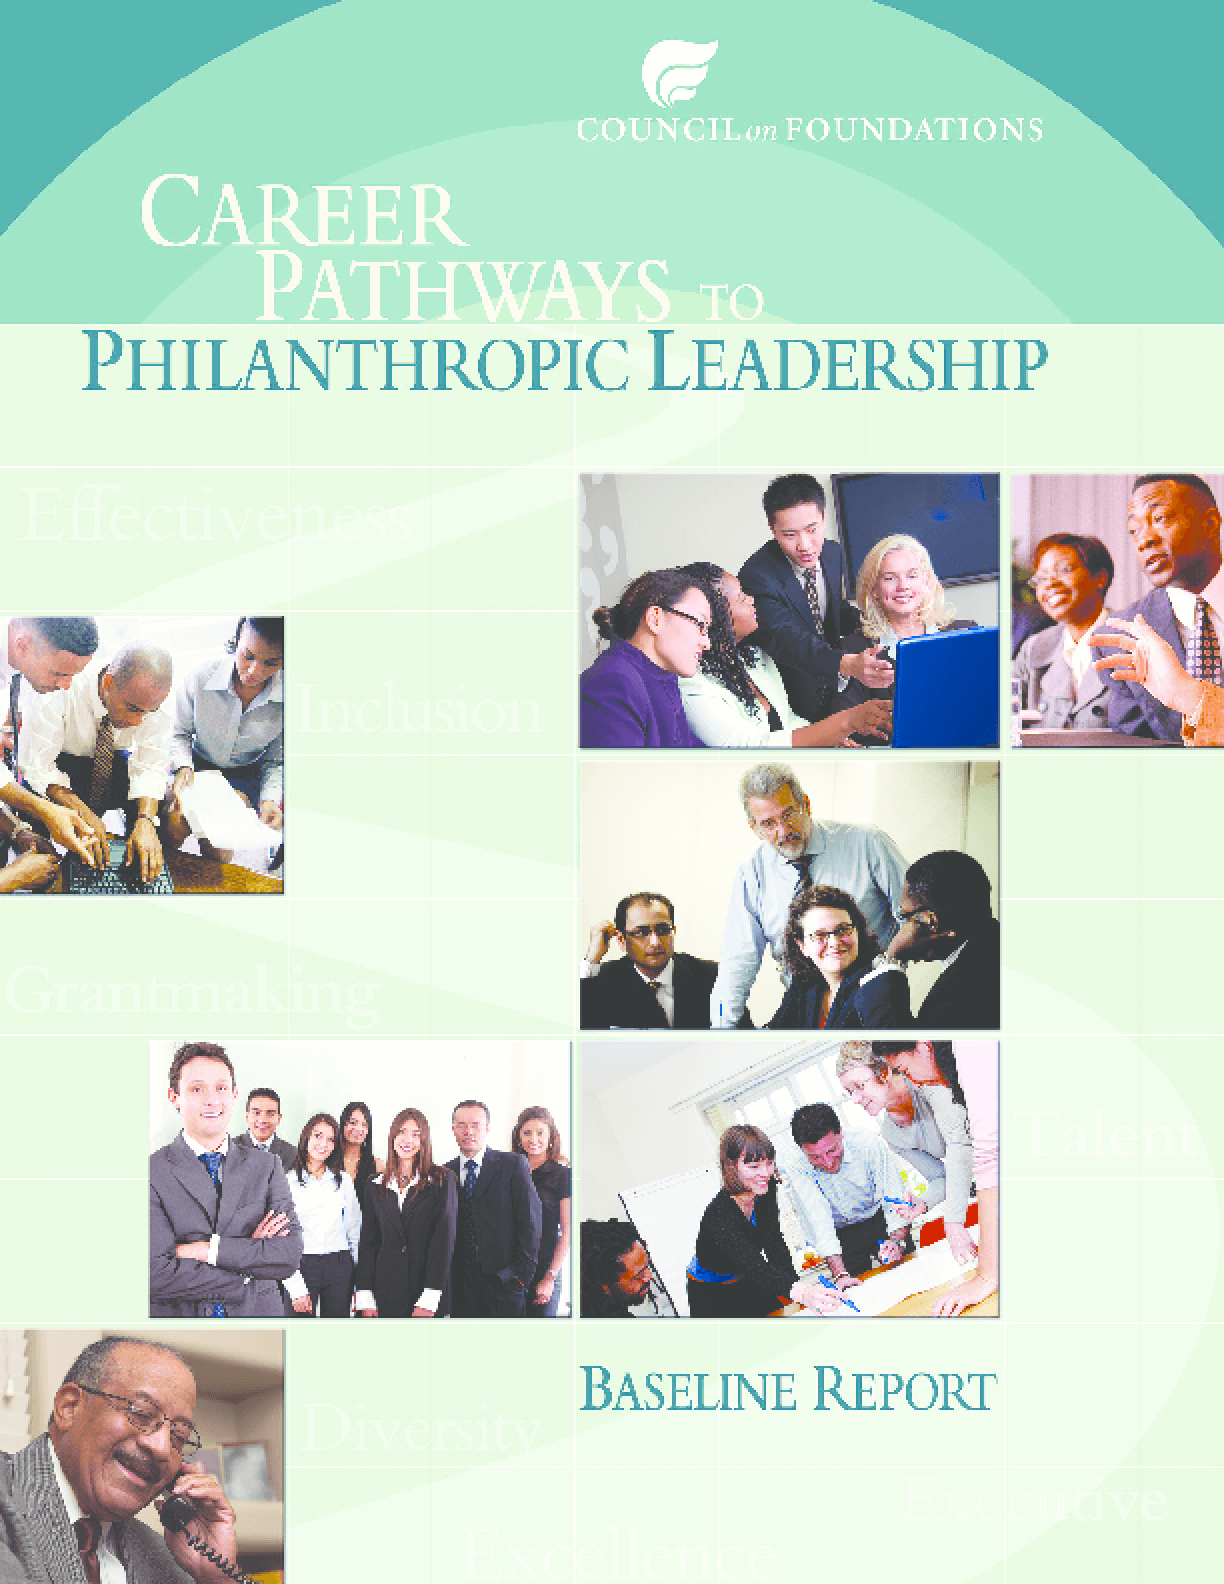 Career Pathways to Philanthropic Leadership 2009 Baseline Report